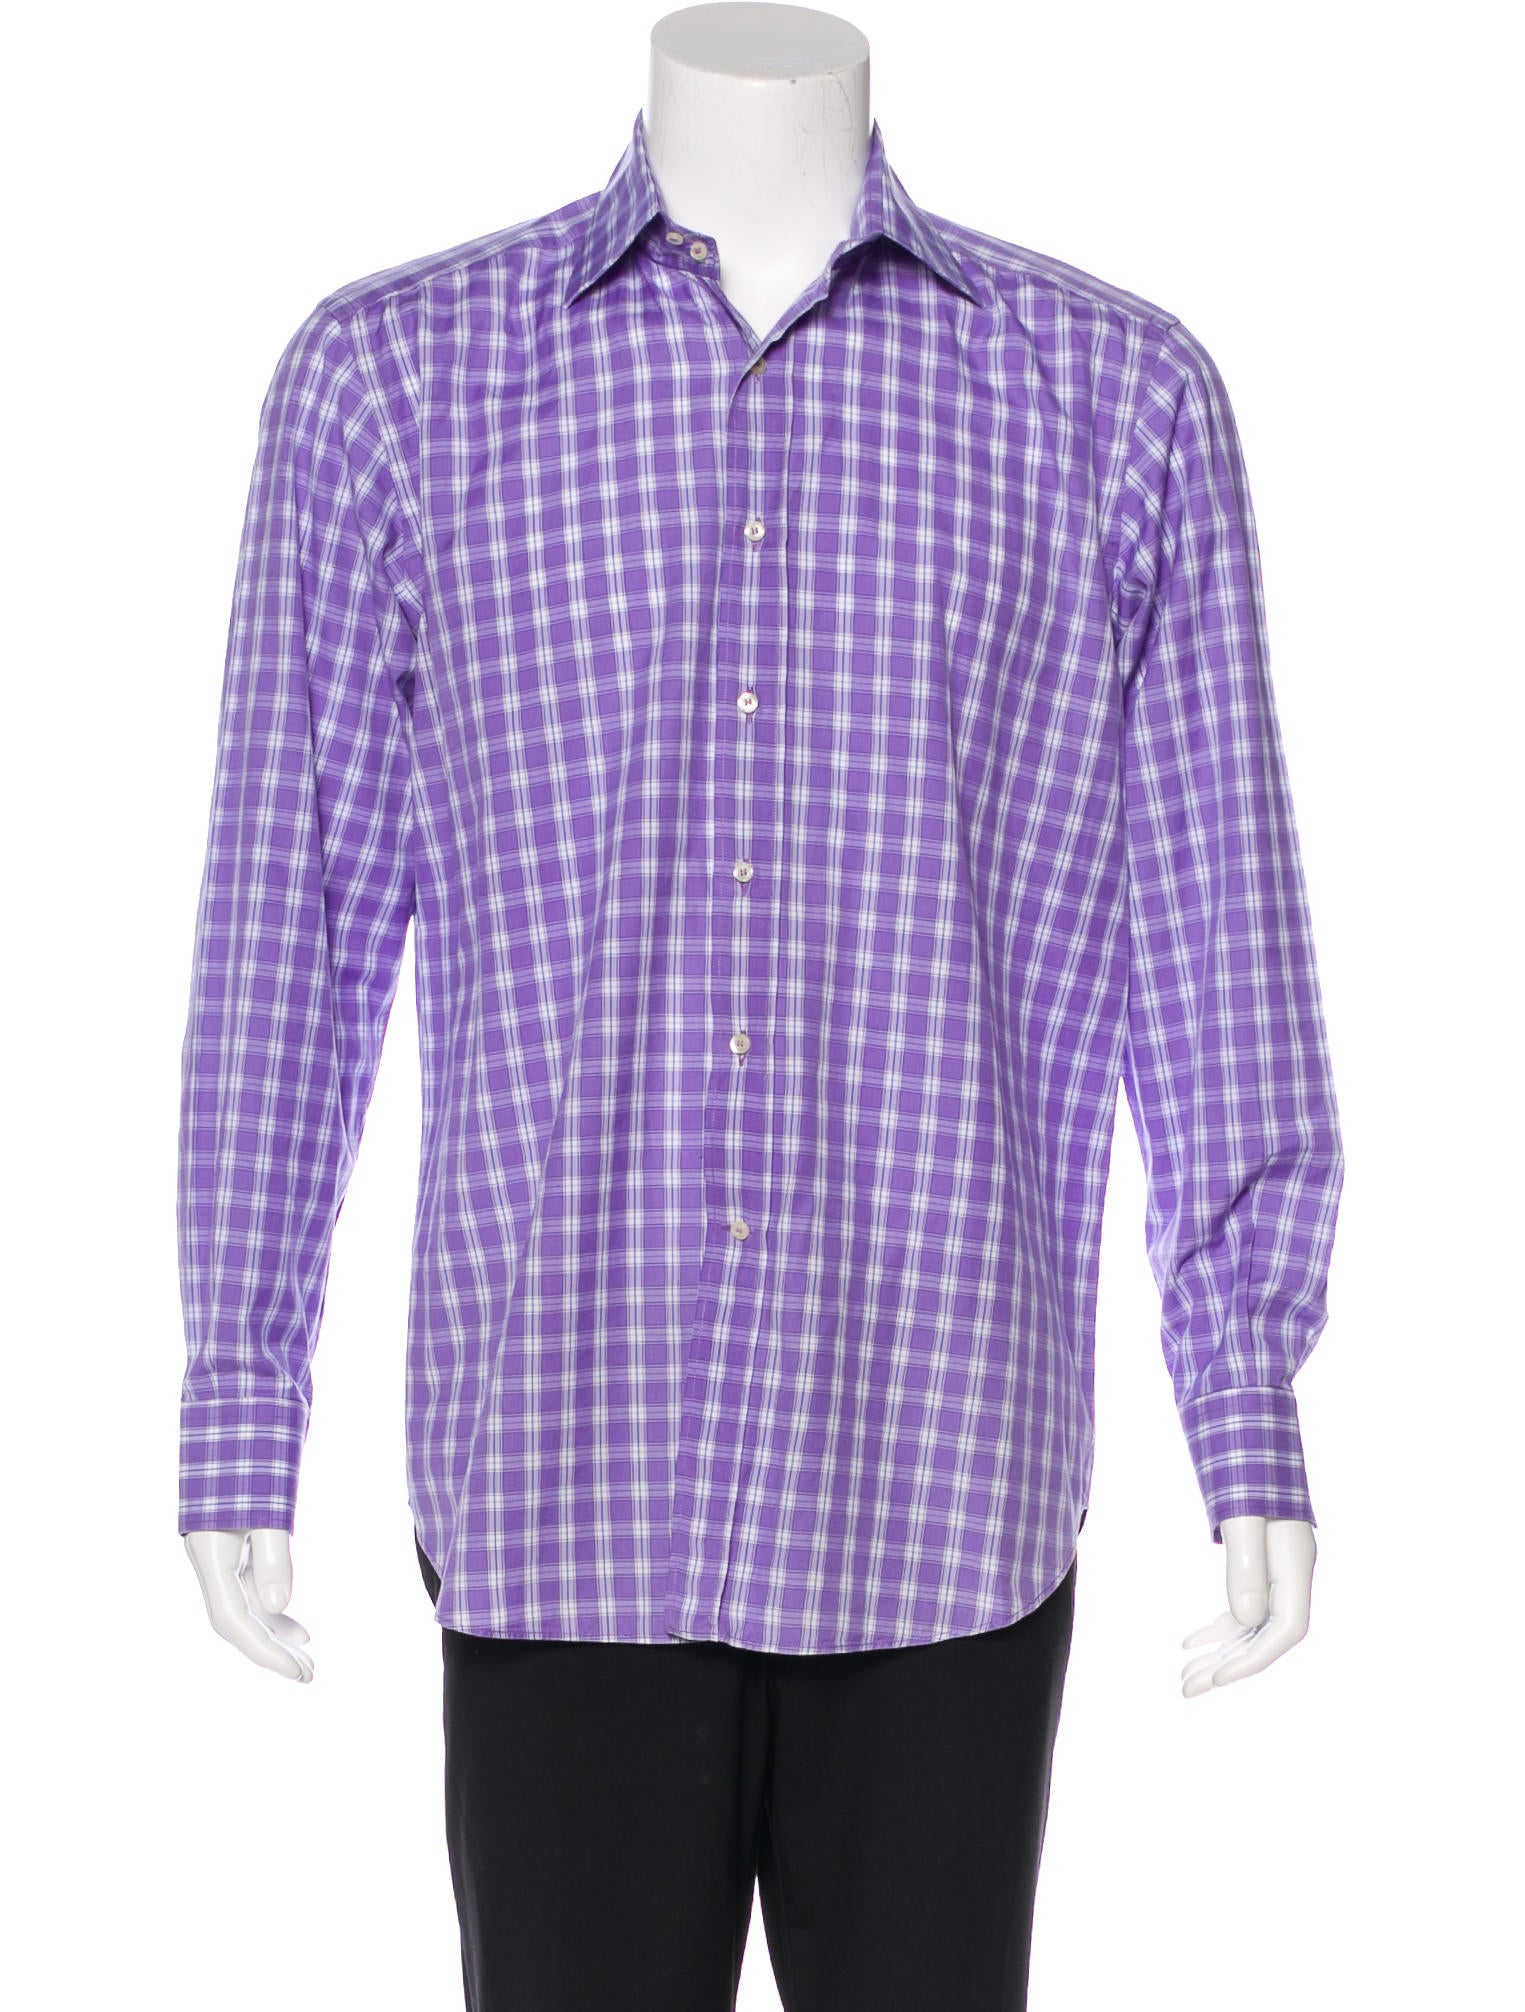 Etro plaid button up shirt clothing etr50418 the for Purple plaid button up shirt